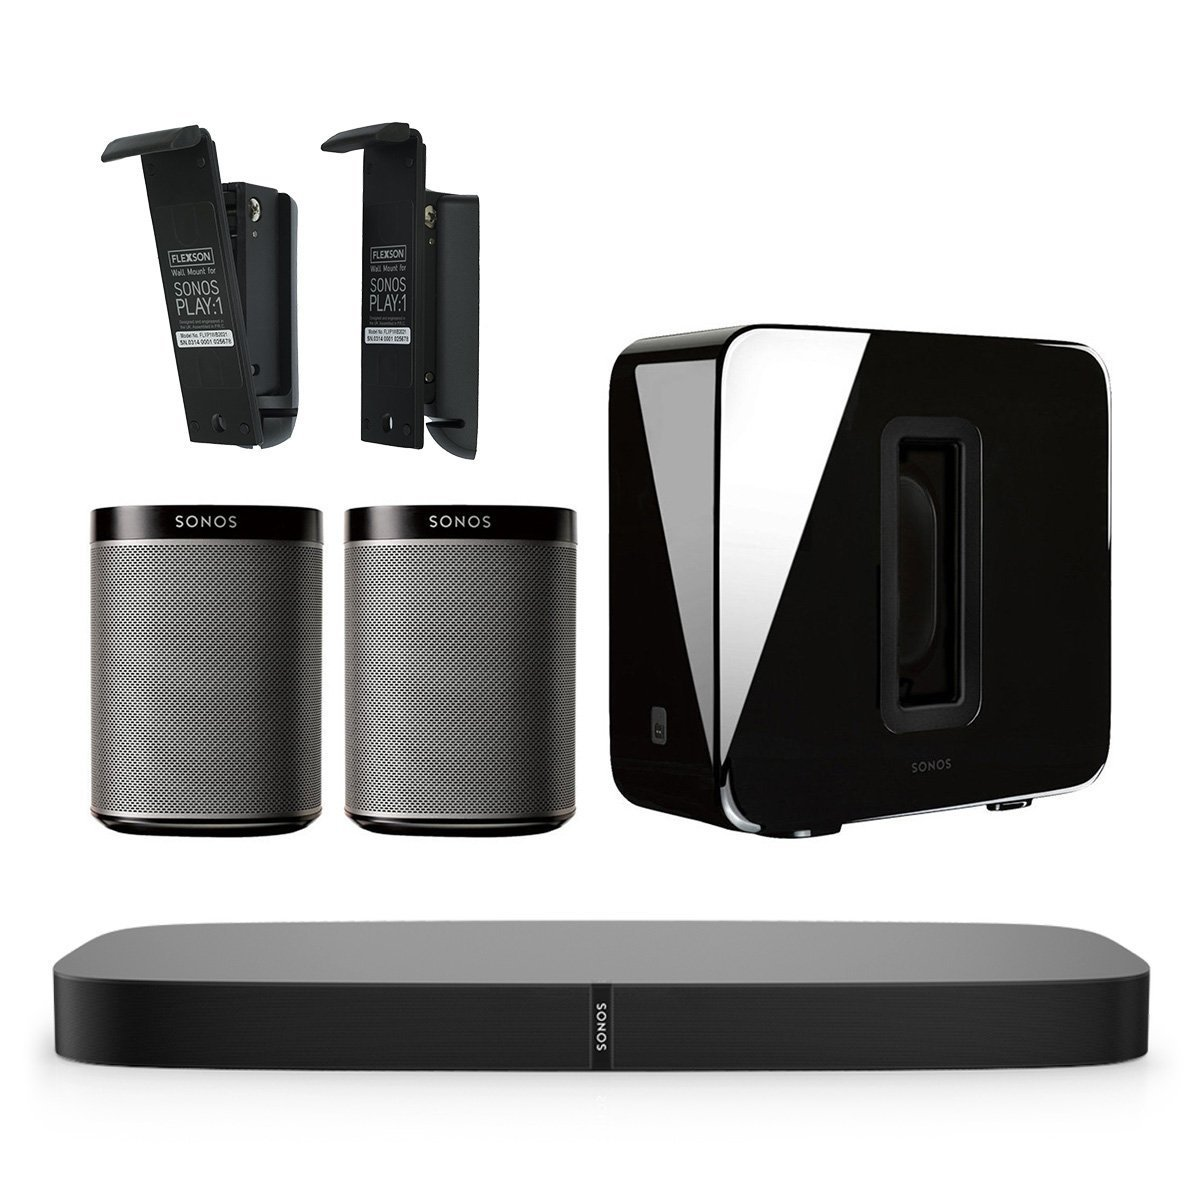 Sonos 5.1 PLAYBASE Home Theater Digital Music System with Flexson Wall Mounts for PLAY:1 (Black)